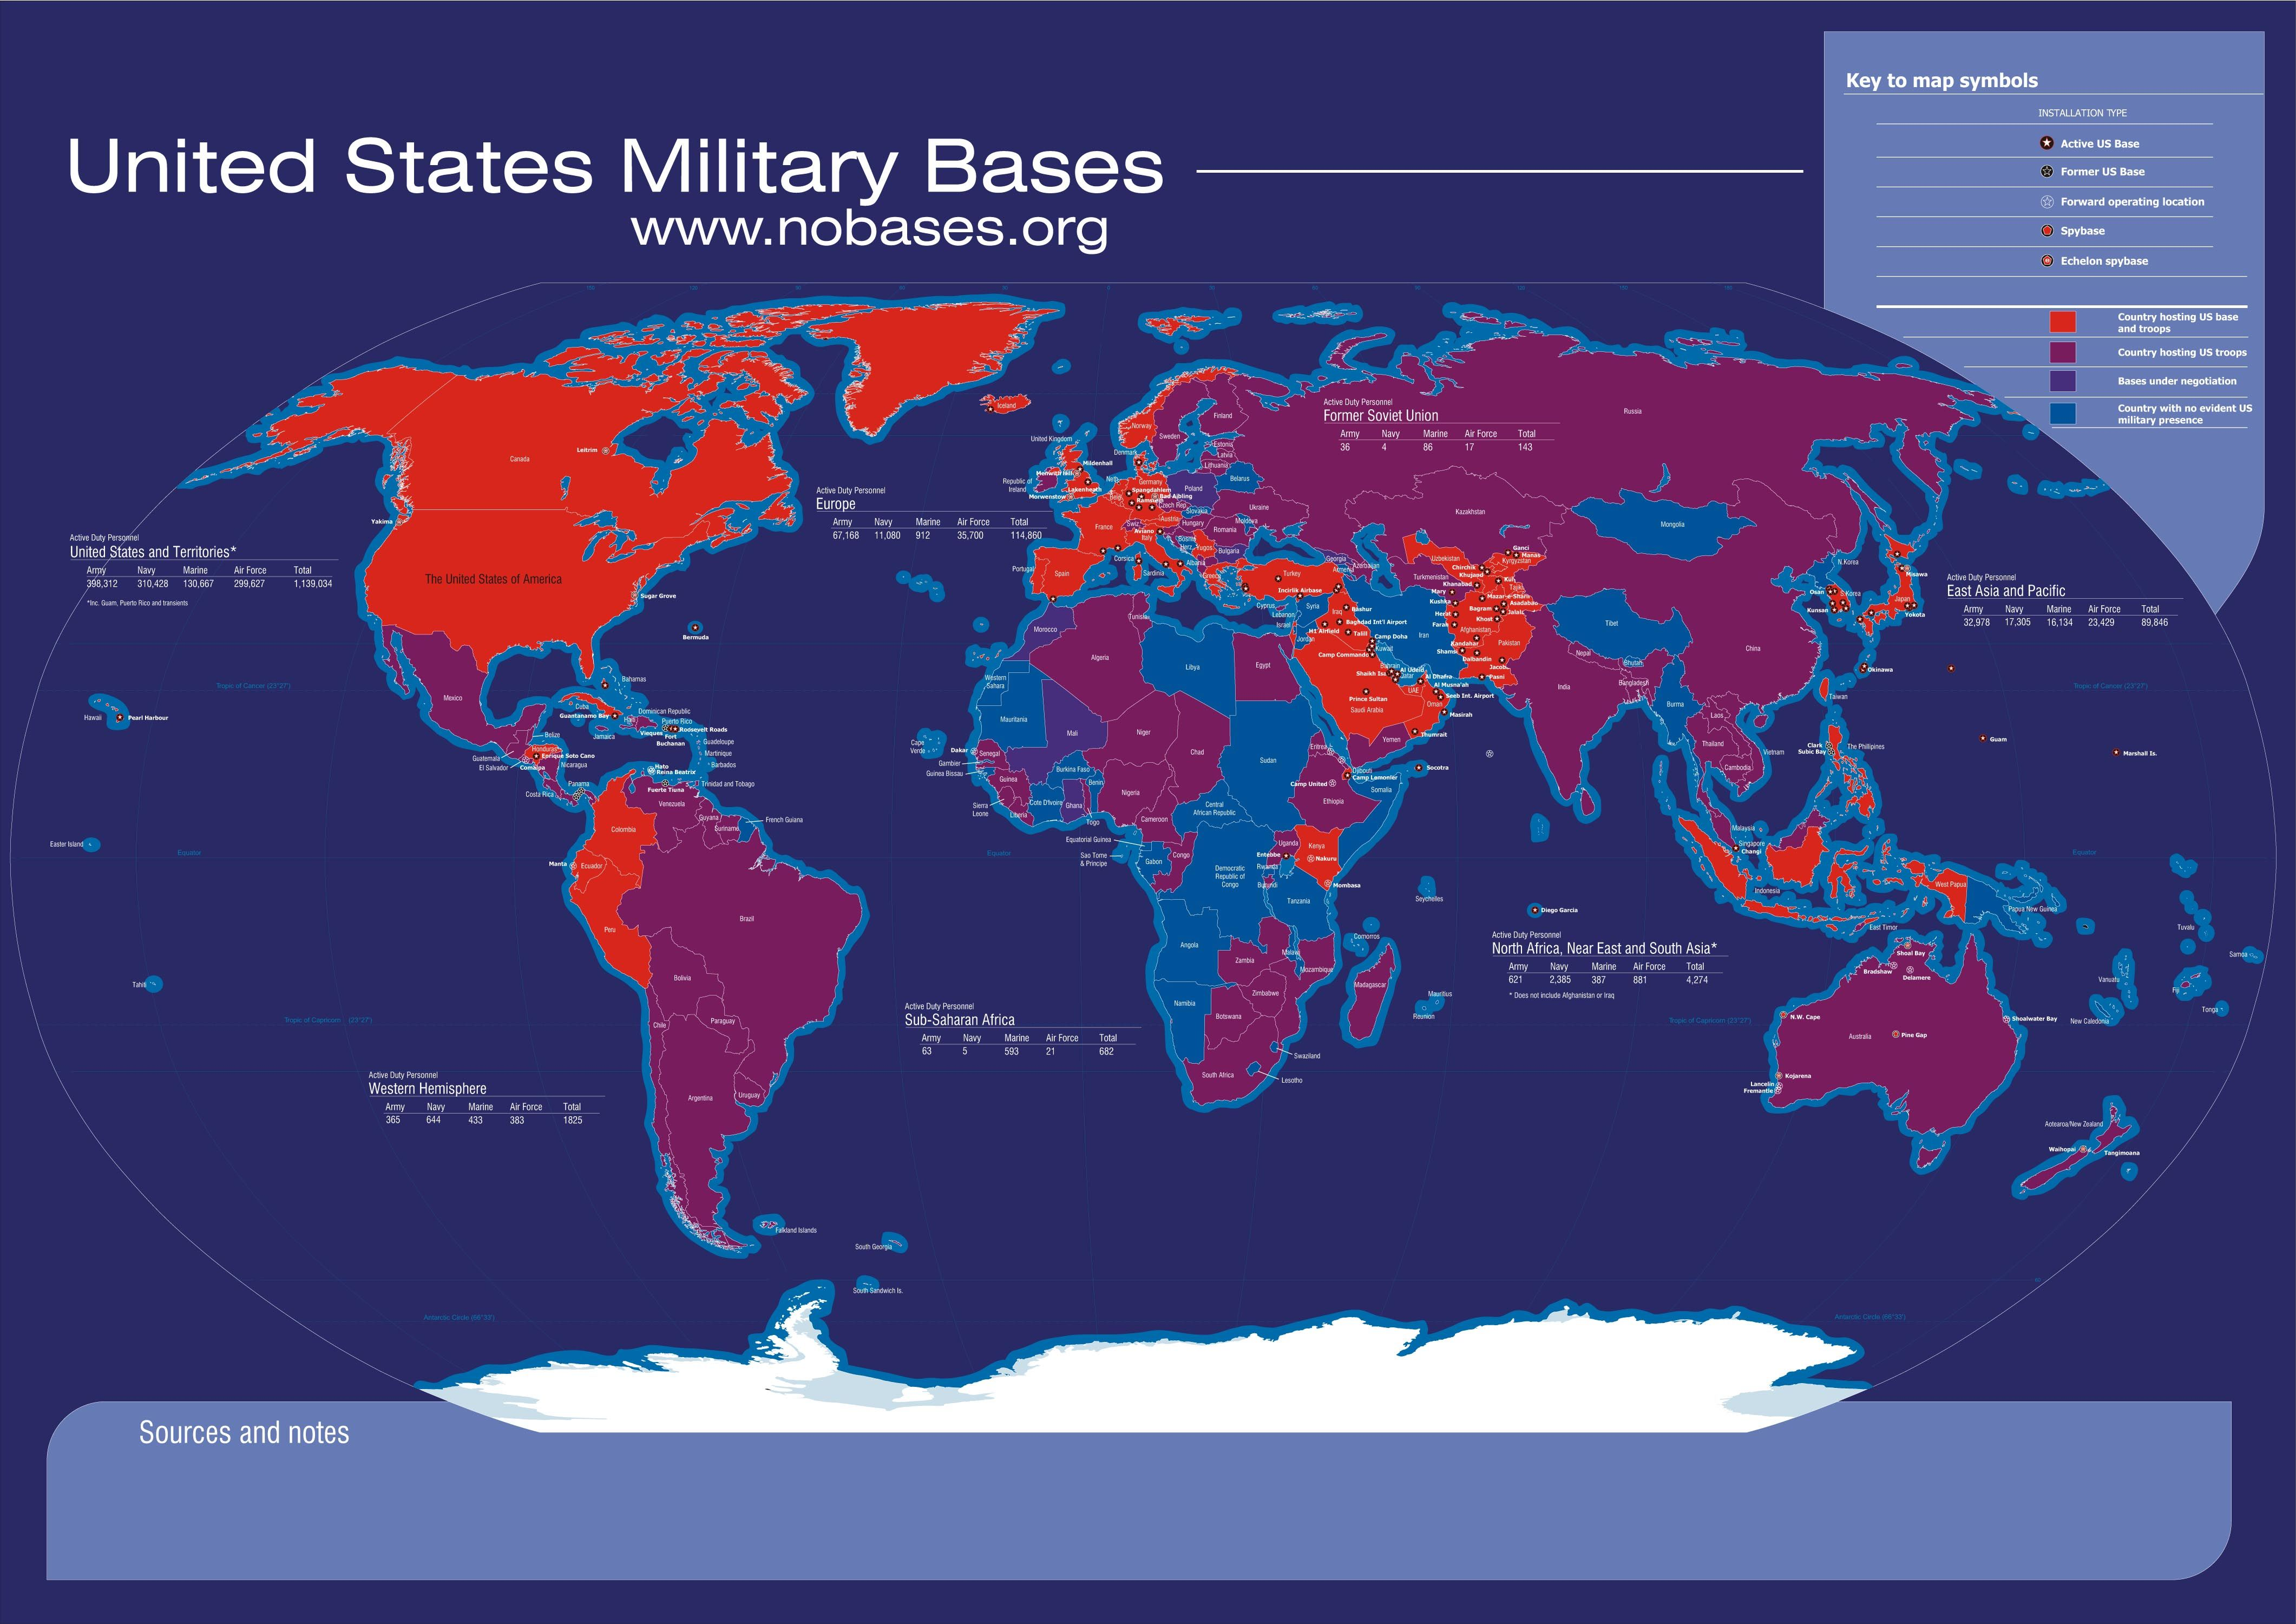 Known Us Military Bases Map on army bases map, russian military bases map, kuwait bases map, canadian military bases map, eucom aor map, russian air bases map, navy bases map, military installations map, us house of representatives map, military world map, us tunnels map, american military bases map, nuclear weapons map, nato bases map, u.s. army forts map, military bases iraq map, military bases usa map, cold war europe map, military bases in florida on a map, air force bases map,